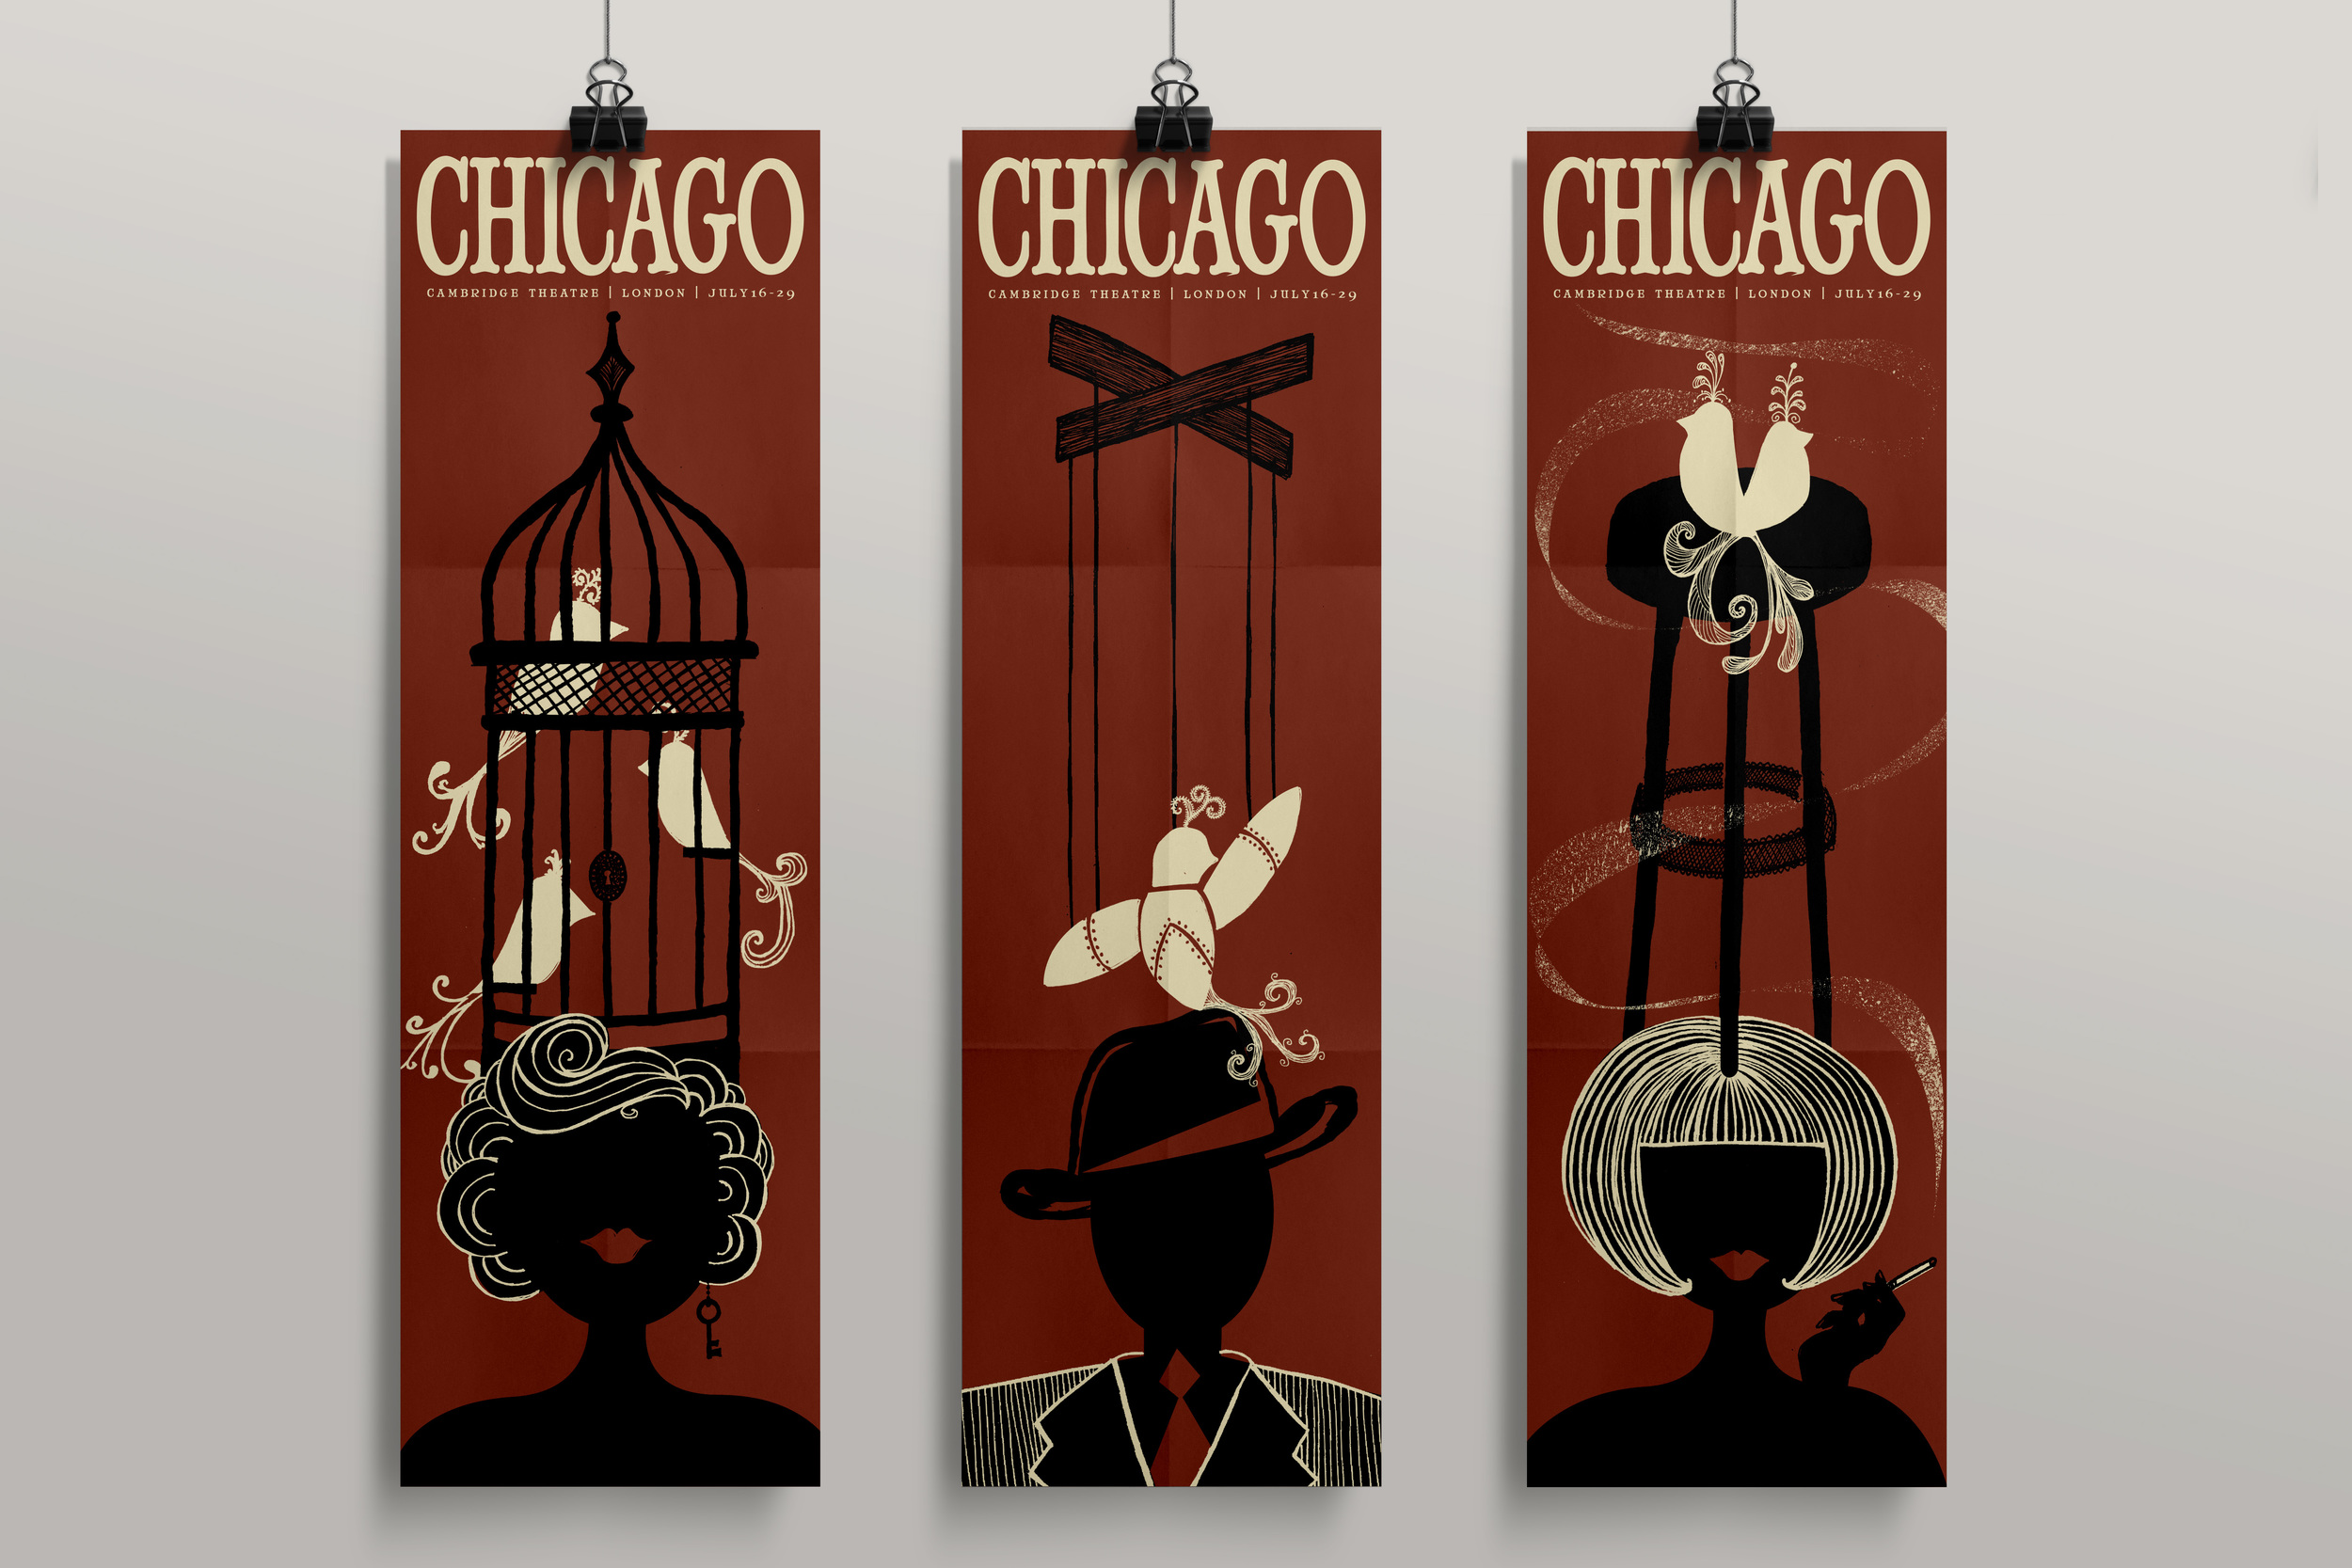 POSTERS_0002_CHICAGO.jpg